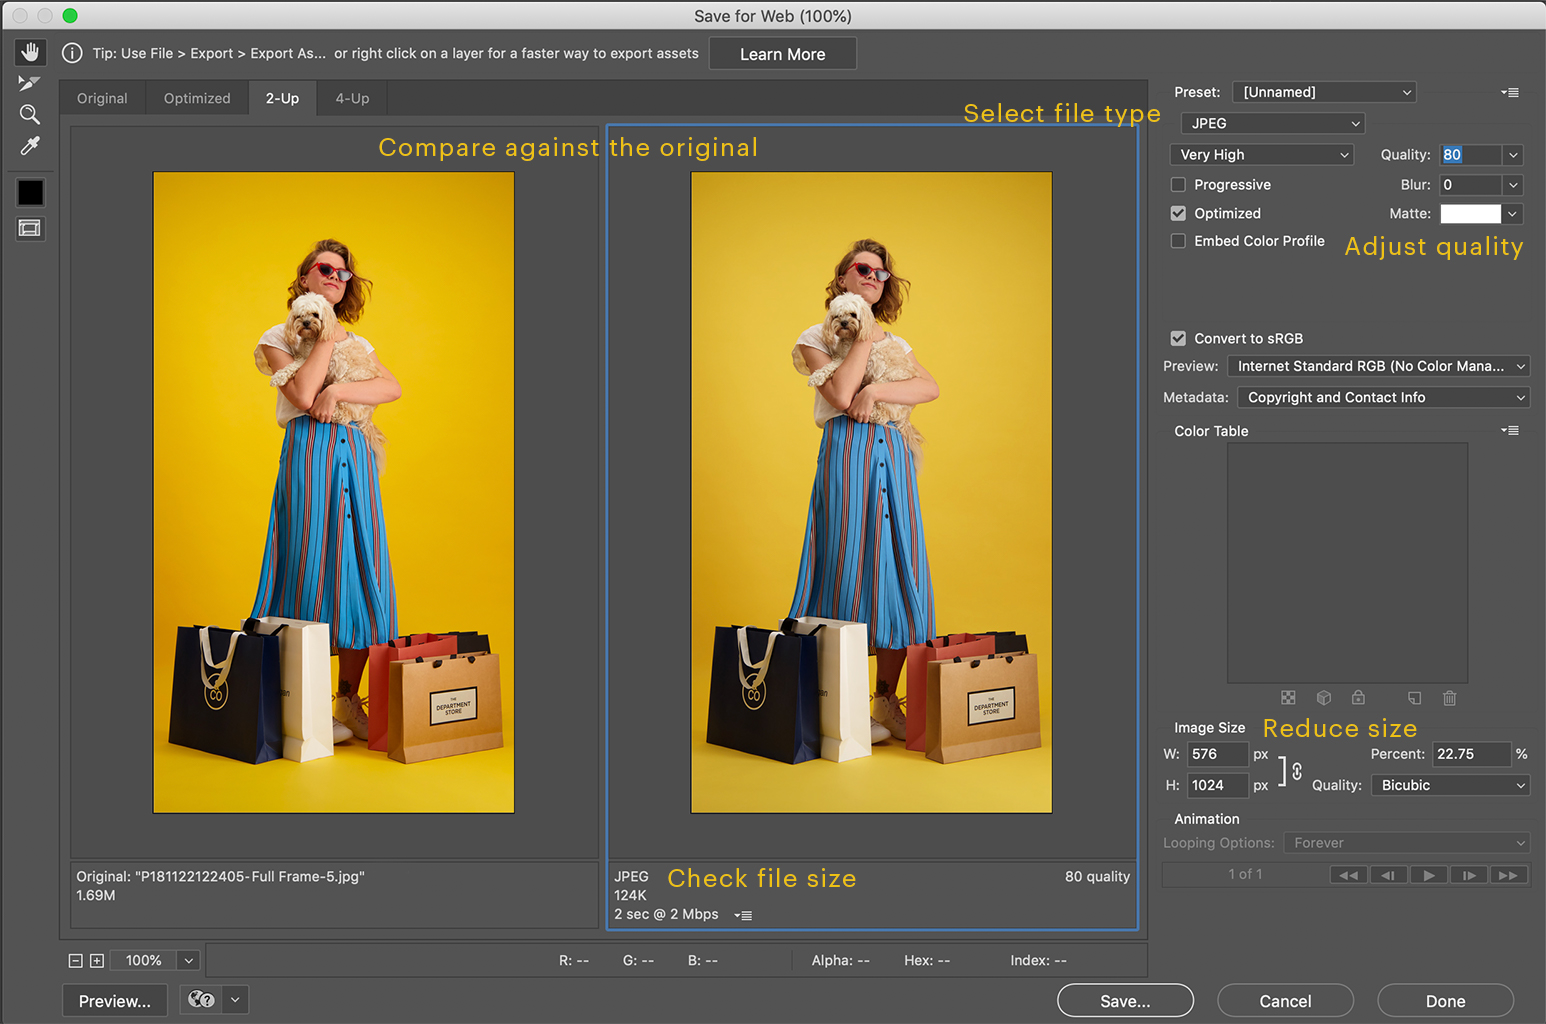 How-to-reduce-image-file-size-for-ecommerce-websites.jpg